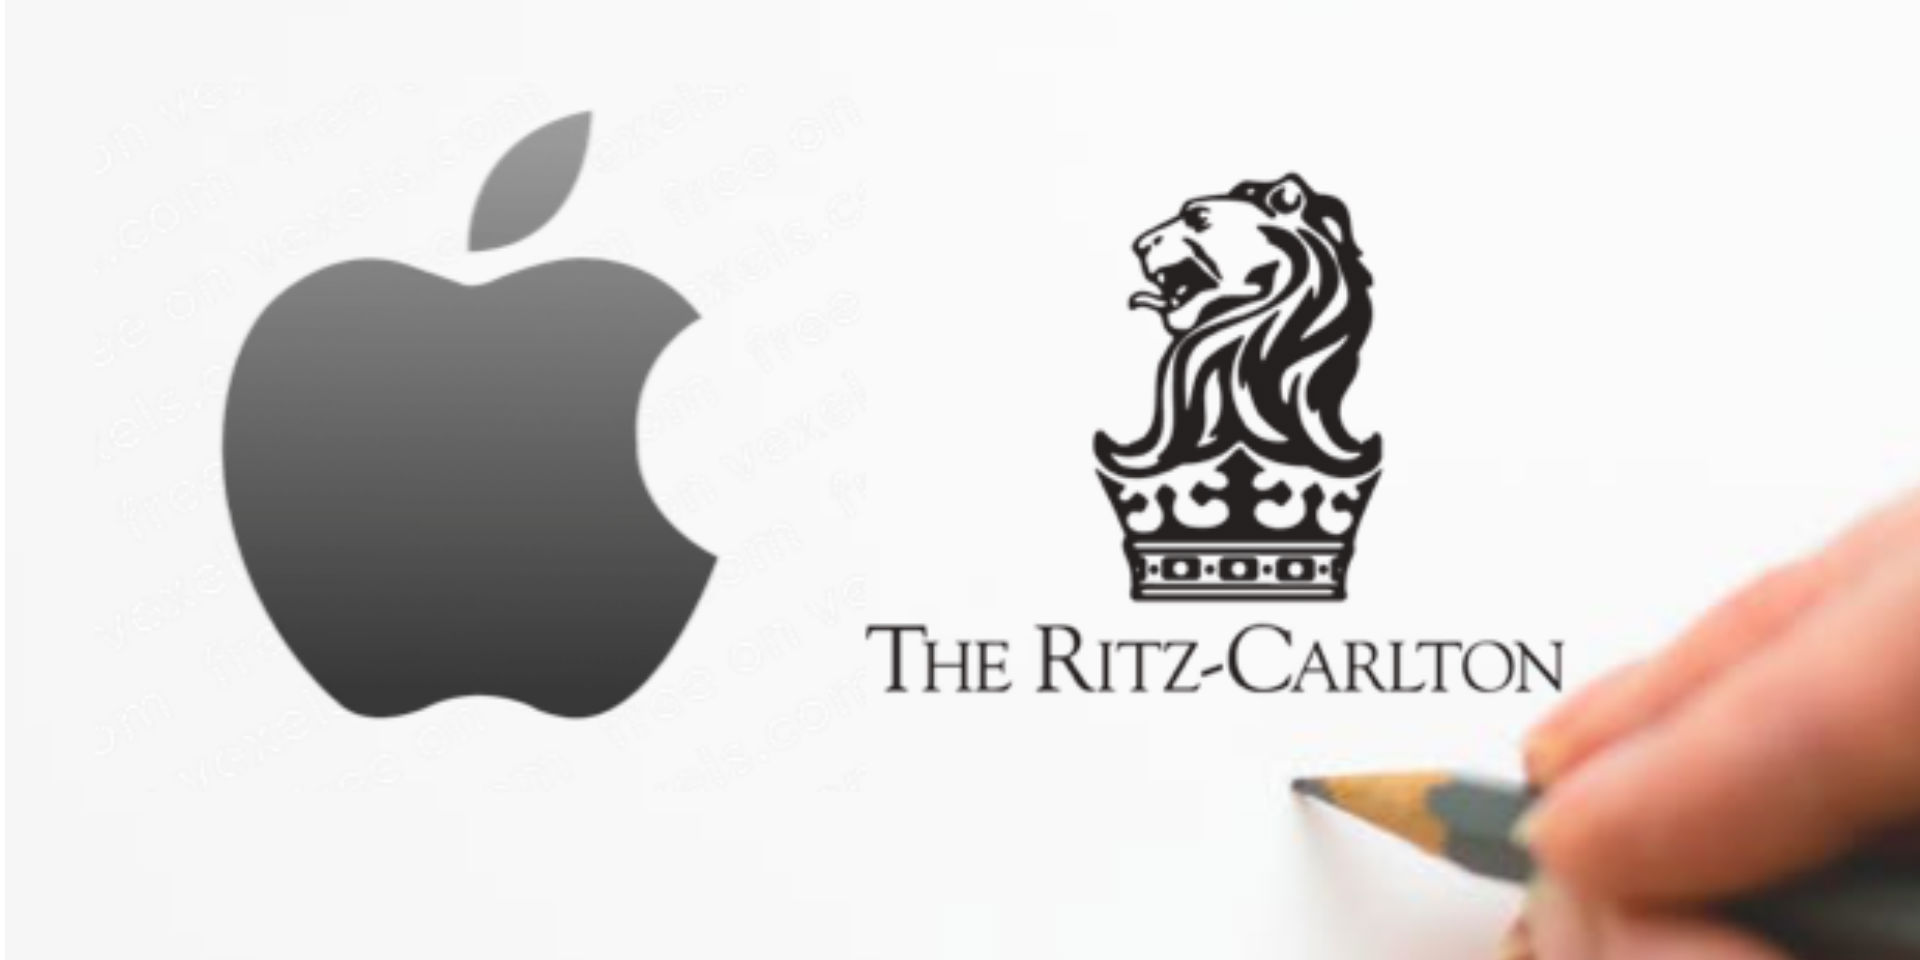 When Apple learned from The Ritz-Carlton